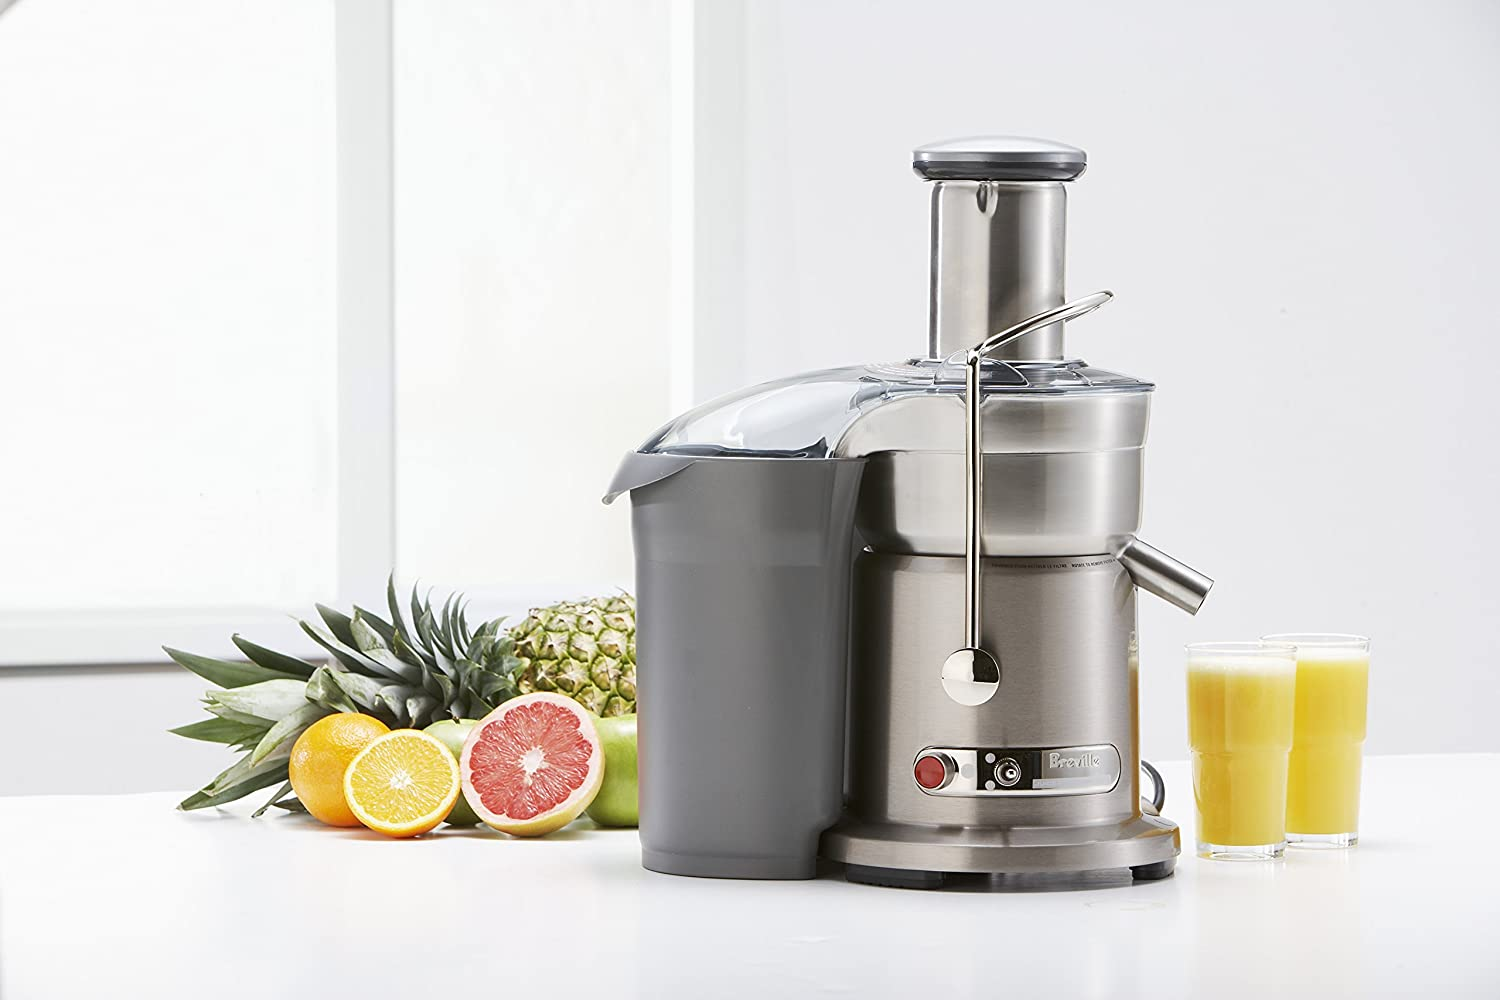 Best Rated Masticating Juicers 2016 : Best Juicer Reviews 2016